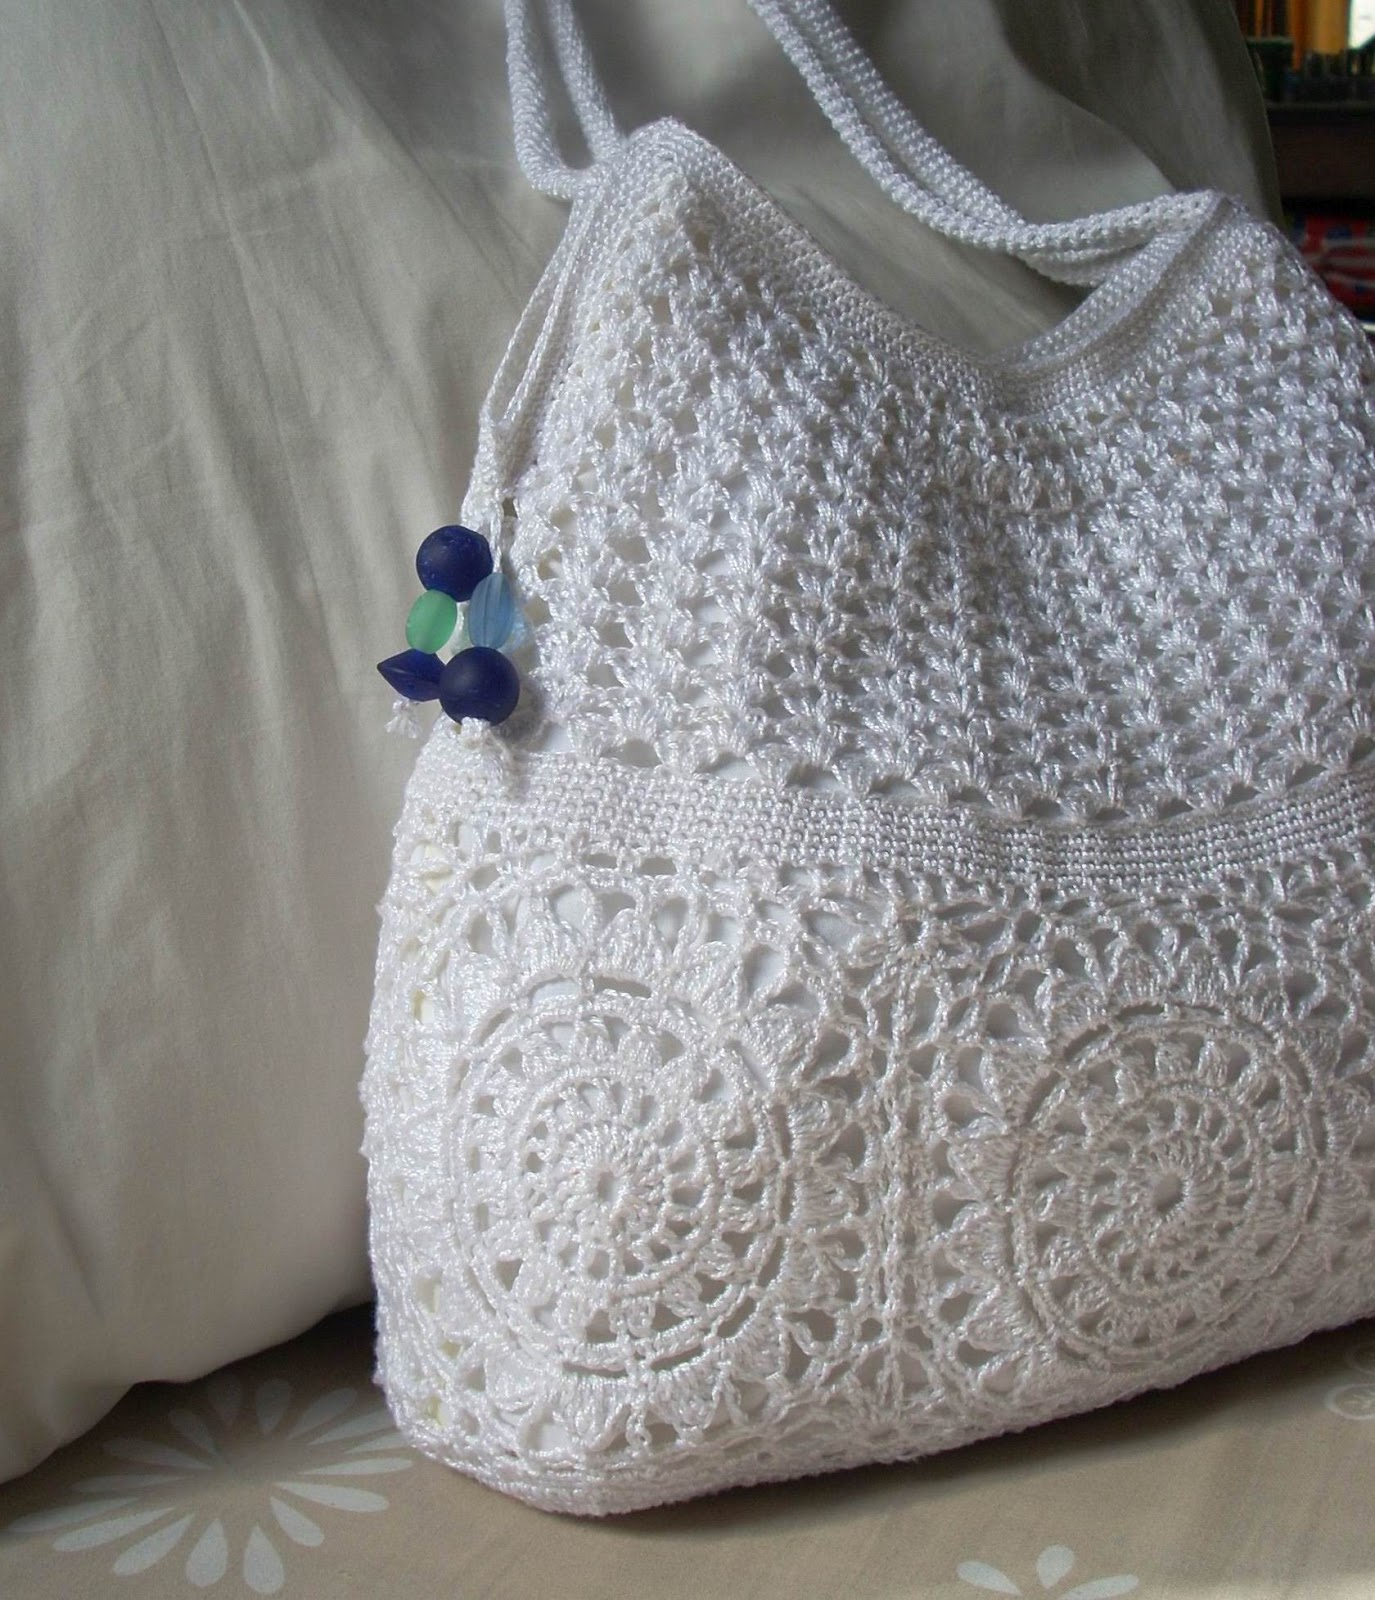 Crochet Bag Patterns On Pinterest Crochet Pattern Ideas